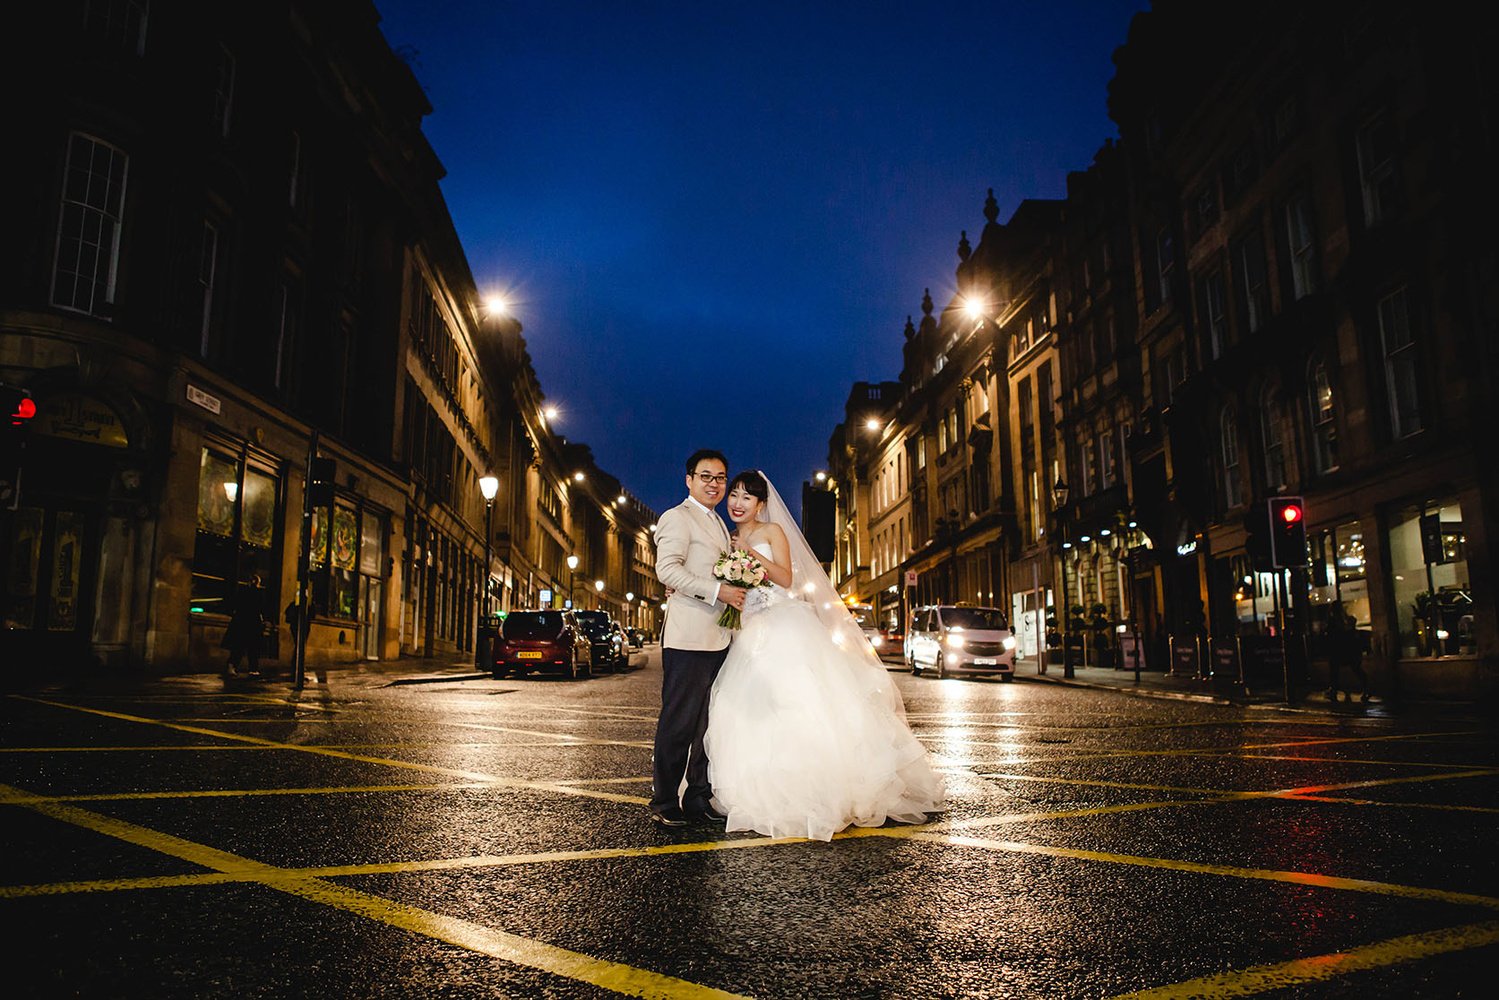 Newcastle upon Tyne wedding phgotography by Erika Tanith